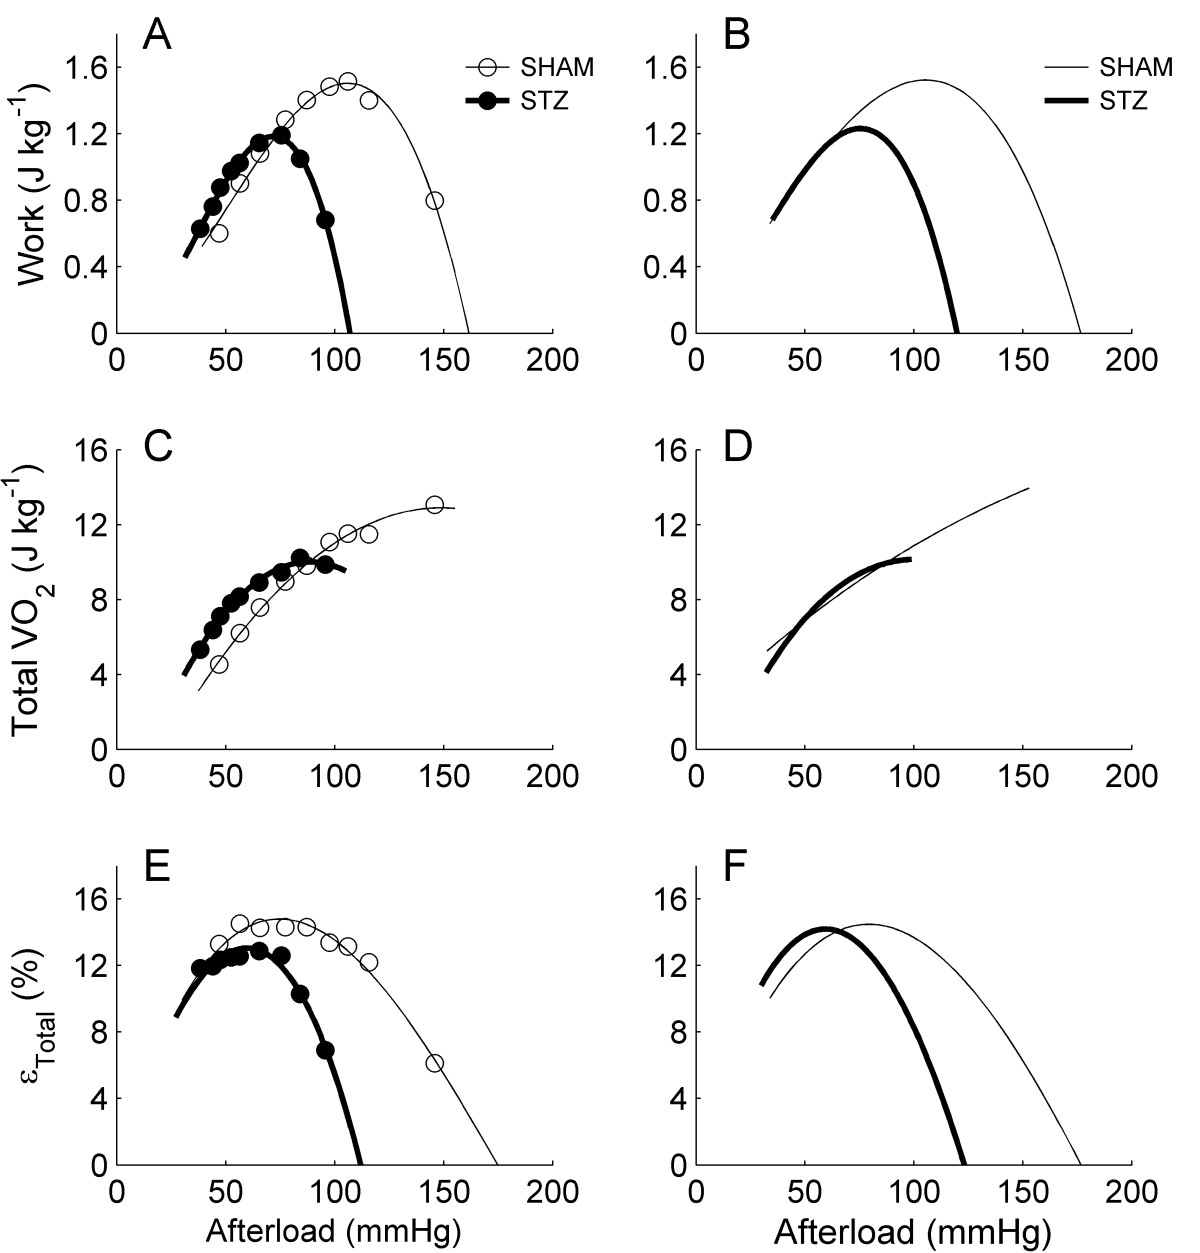 http://static-content.springer.com/image/art%3A10.1186%2F1475-2840-13-4/MediaObjects/12933_2013_Article_900_Fig4_HTML.jpg